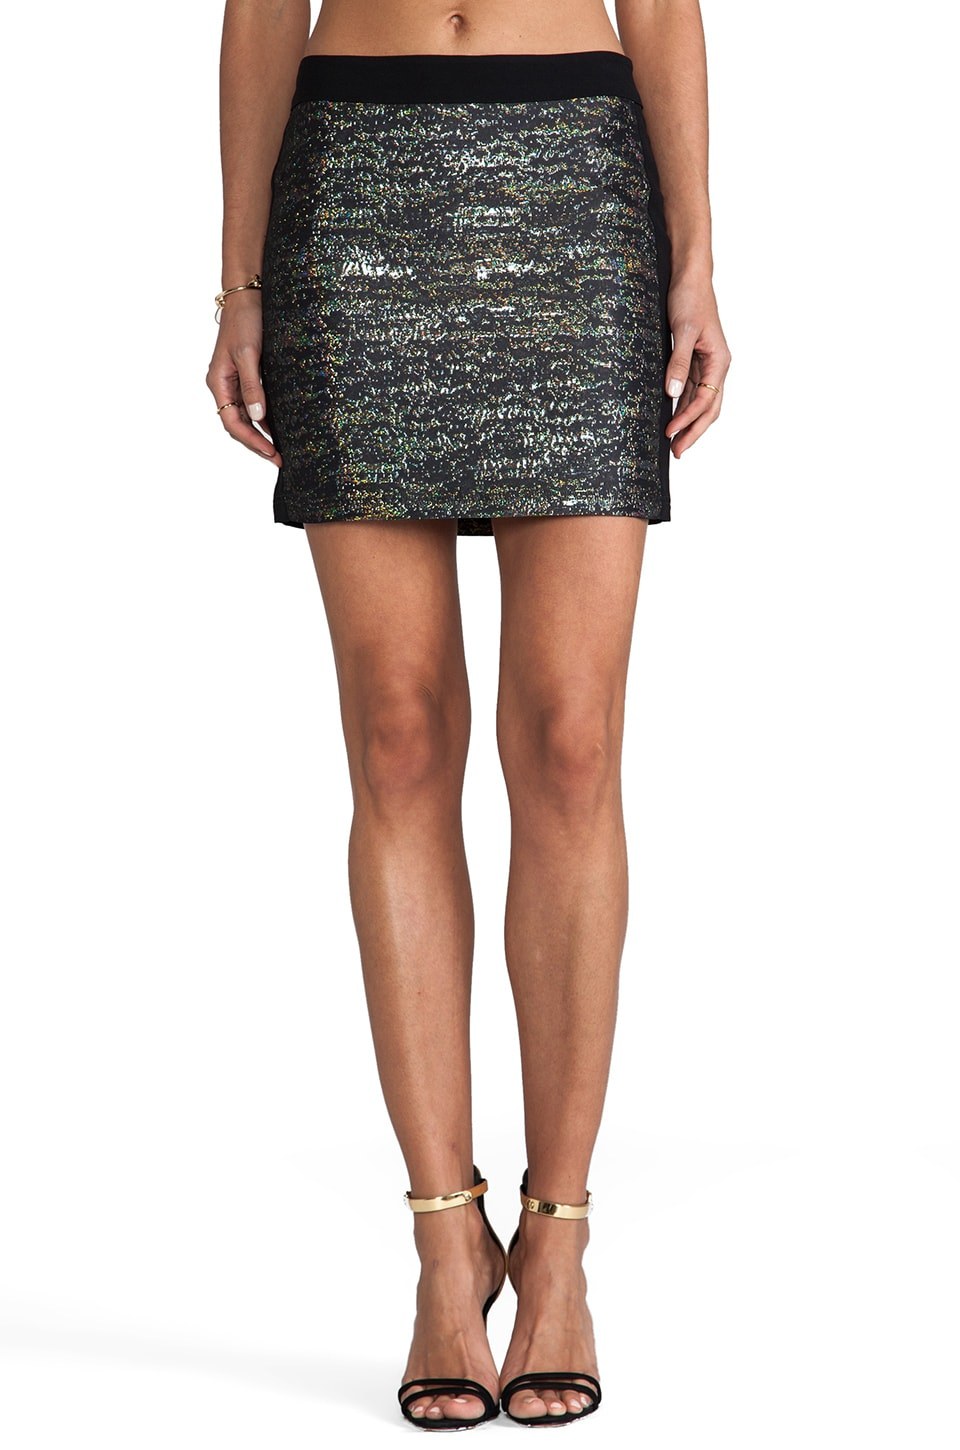 DEREK LAM 10 CROSBY Digital Jacquard Mini Skirt in Black